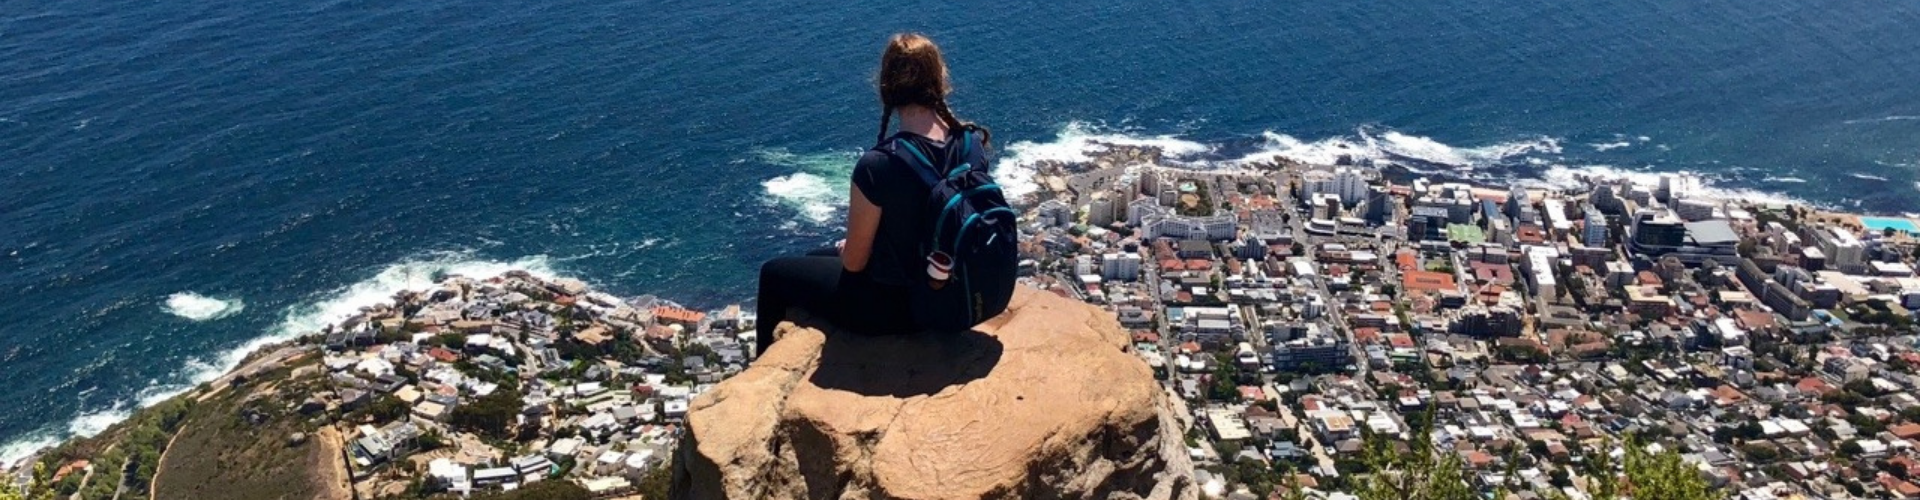 Student peched on Lions Head overlooking Table Bay in S. Africa